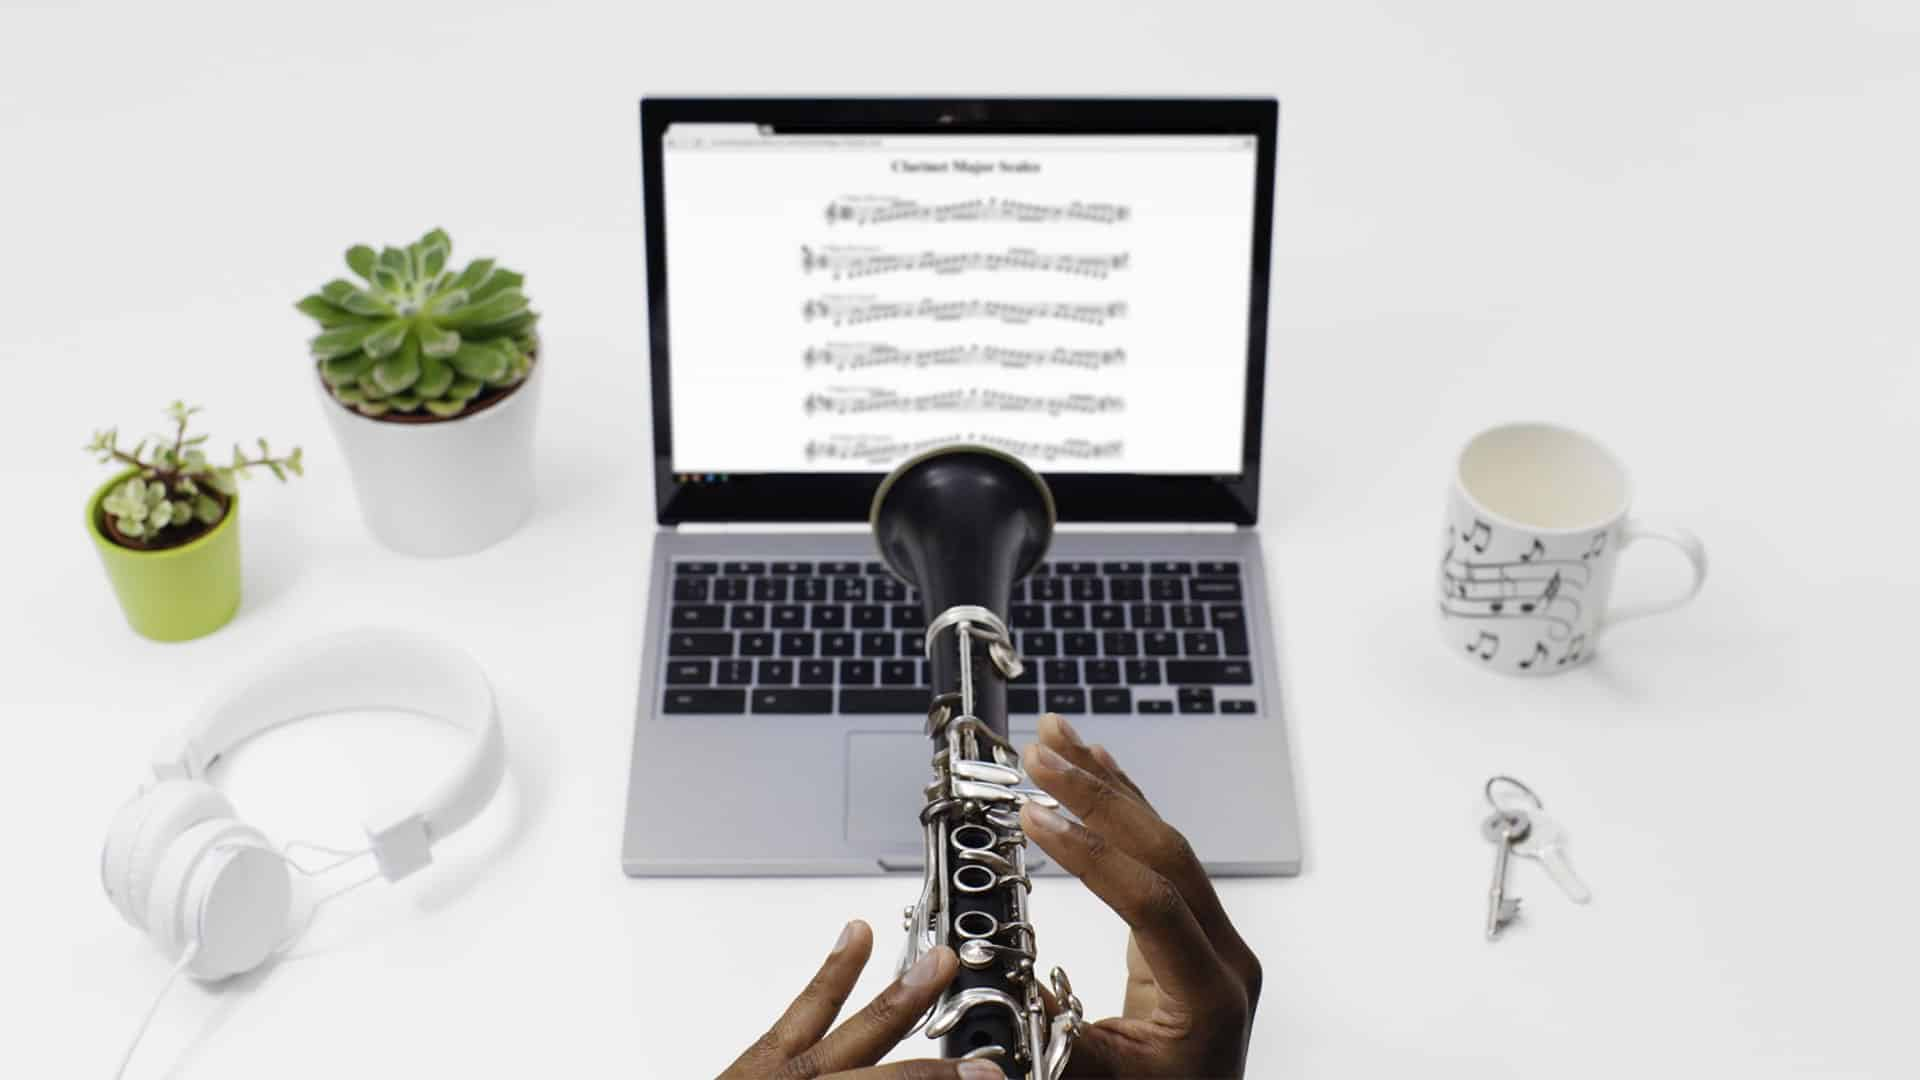 Google Magic clarinet